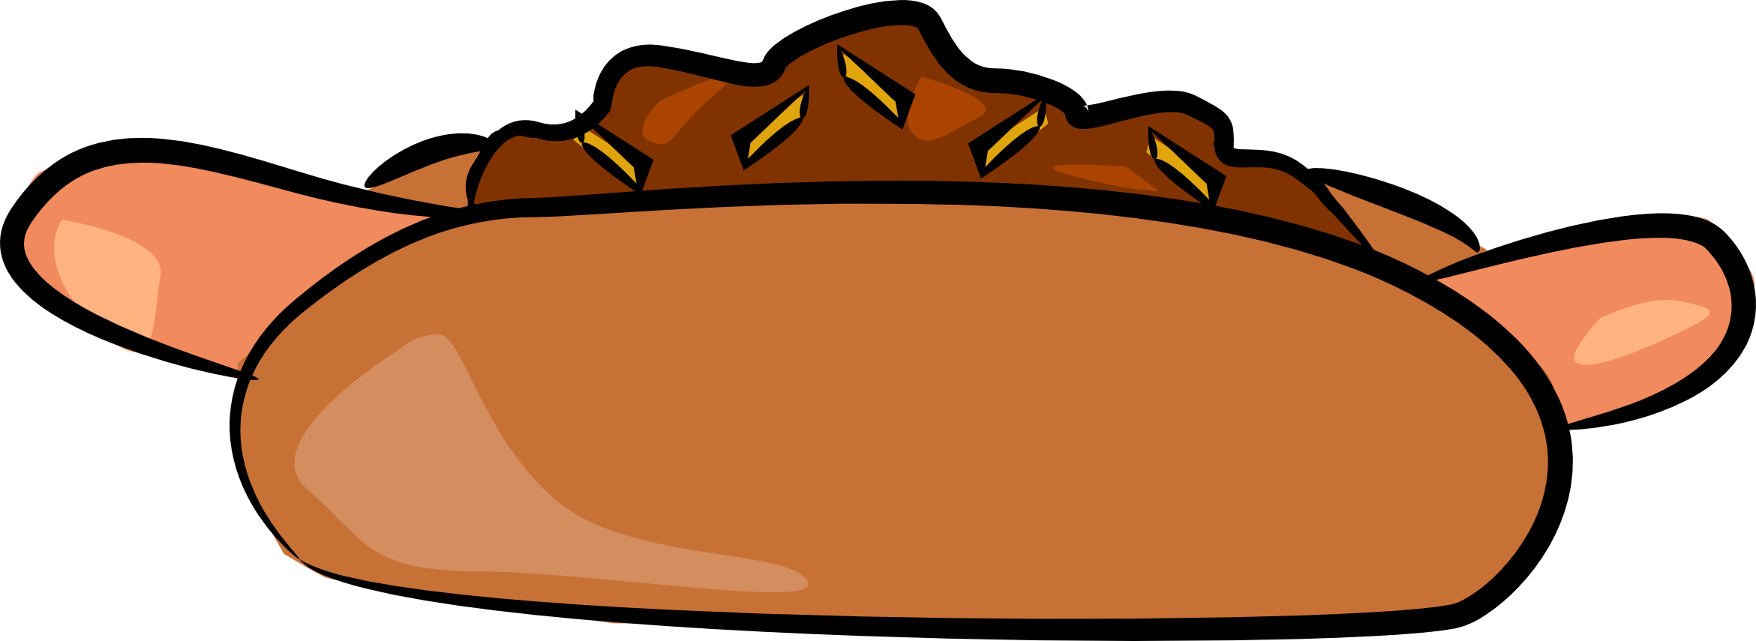 Chili Dog Pictures Free